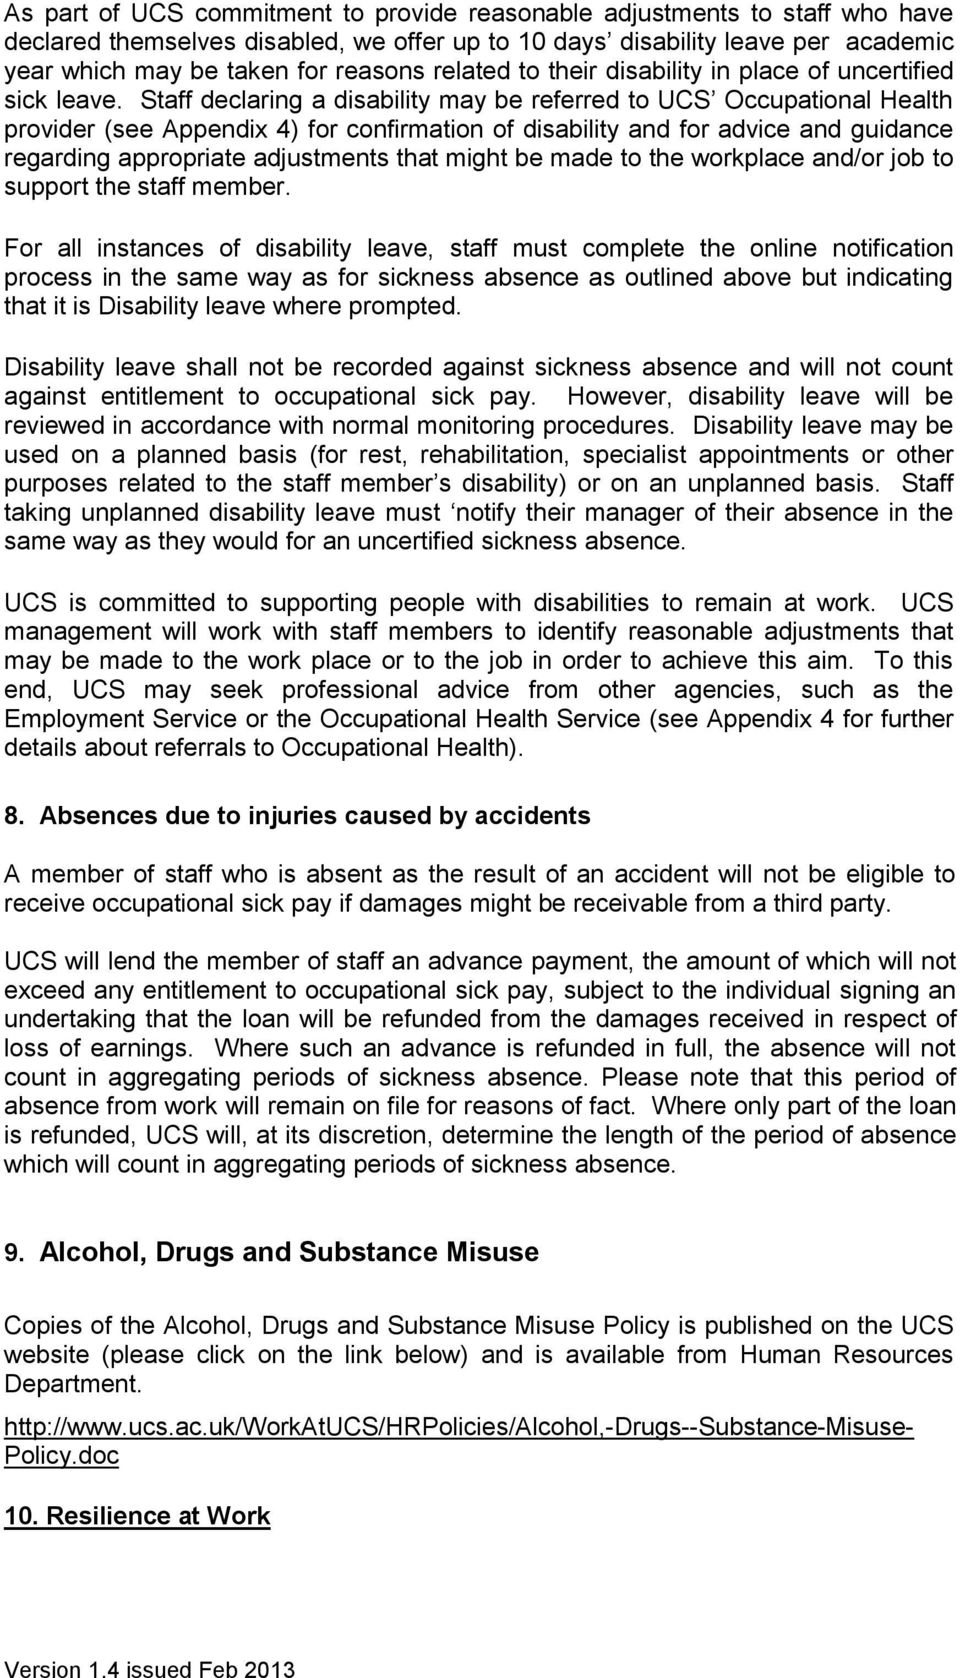 Staff declaring a disability may be referred to UCS Occupational Health provider (see Appendix 4) for confirmation of disability and for advice and guidance regarding appropriate adjustments that